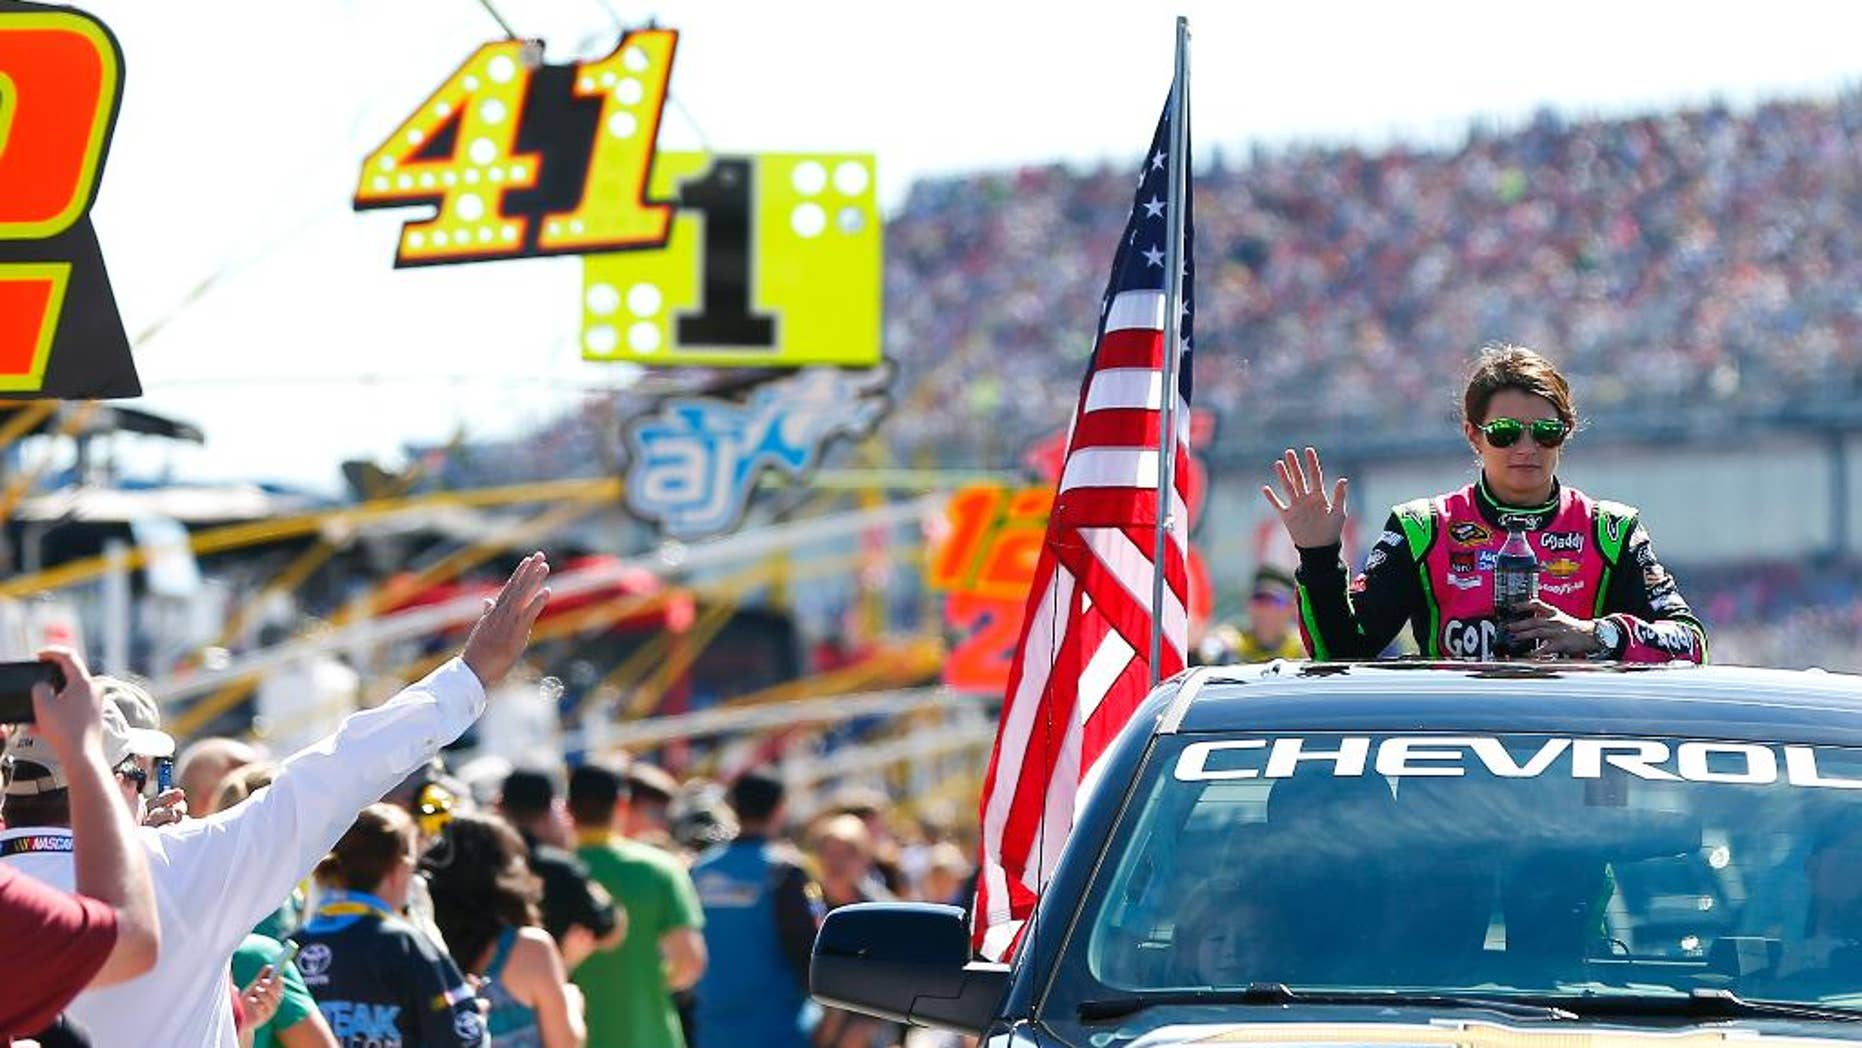 Danica Patrick, right, waves to fans as she rides in a truck to her car for the NASCAR Sprint Cup Series auto race at Talladega Superspeedway, Sunday, Oct. 19, 2014, in Talladega, Ala. (AP Photo/John Bazemore)